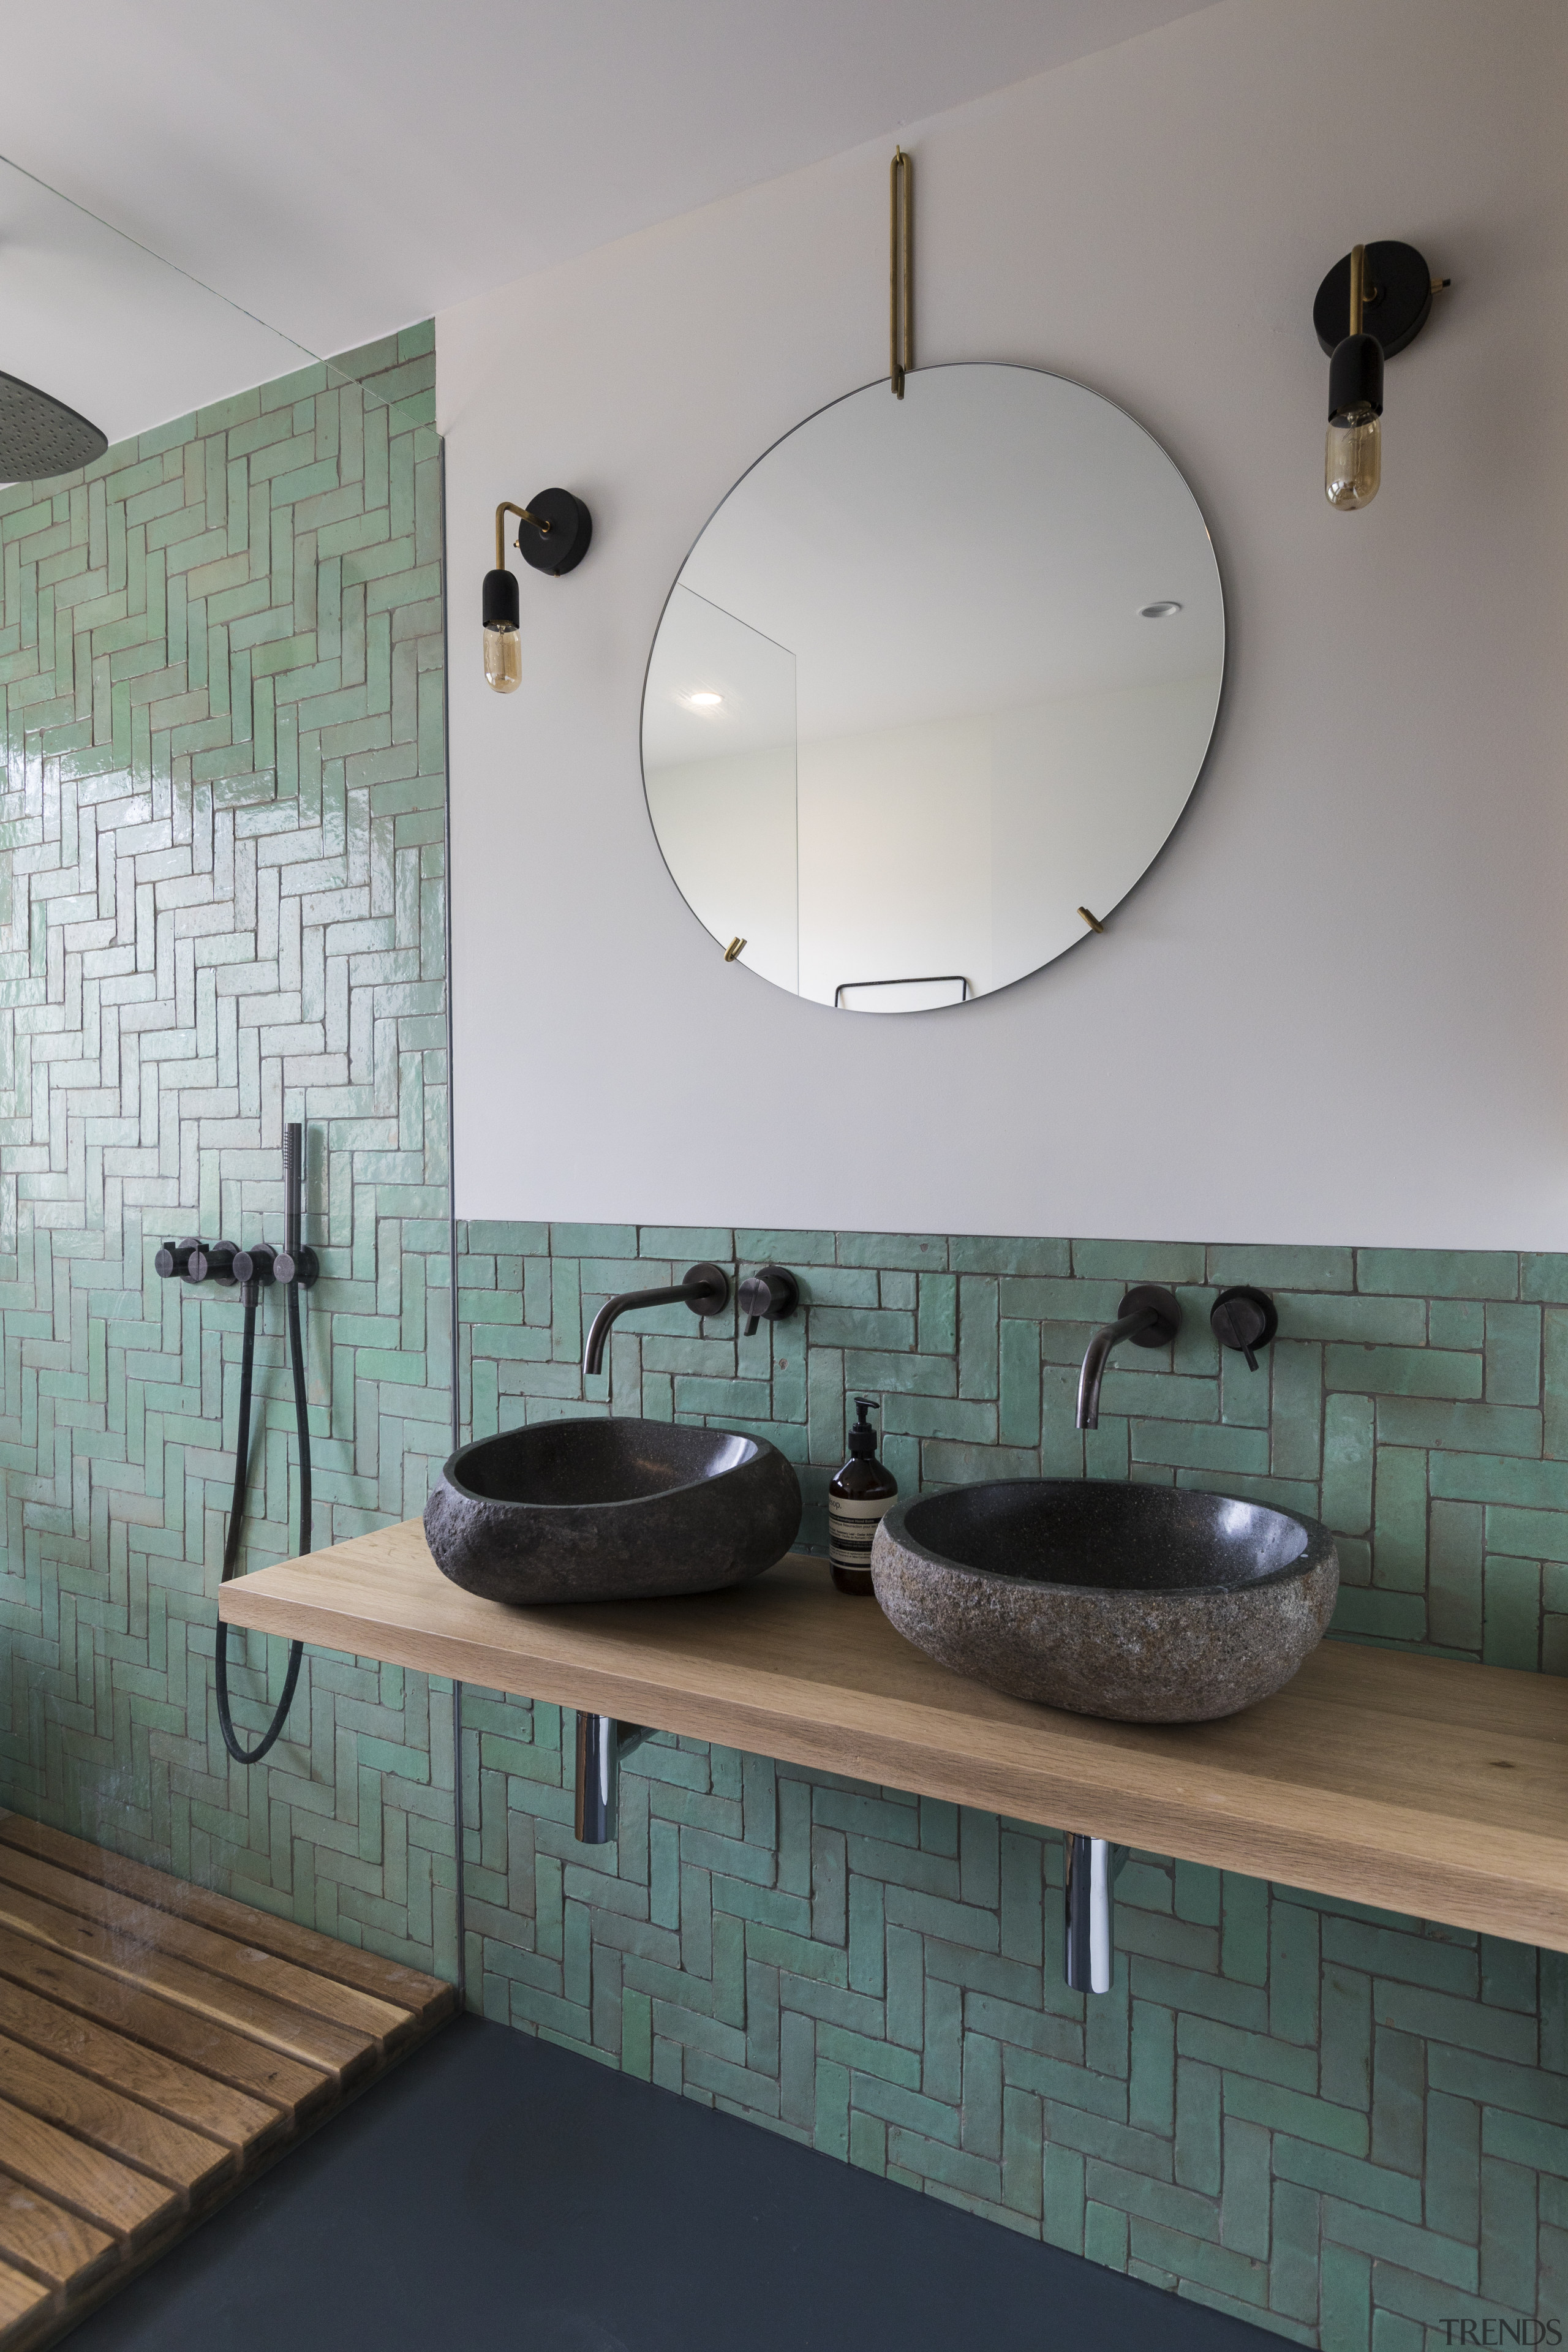 ​​​​​​​A combination of warm wood, blue-green tiles and architecture, bathroom, bathroom sink, ceramic tiles, countertop, floor, flooring, house, bathroom design, marble, plumbing fixture, sink, tap, tile, wall, gray, Cantero Architecture